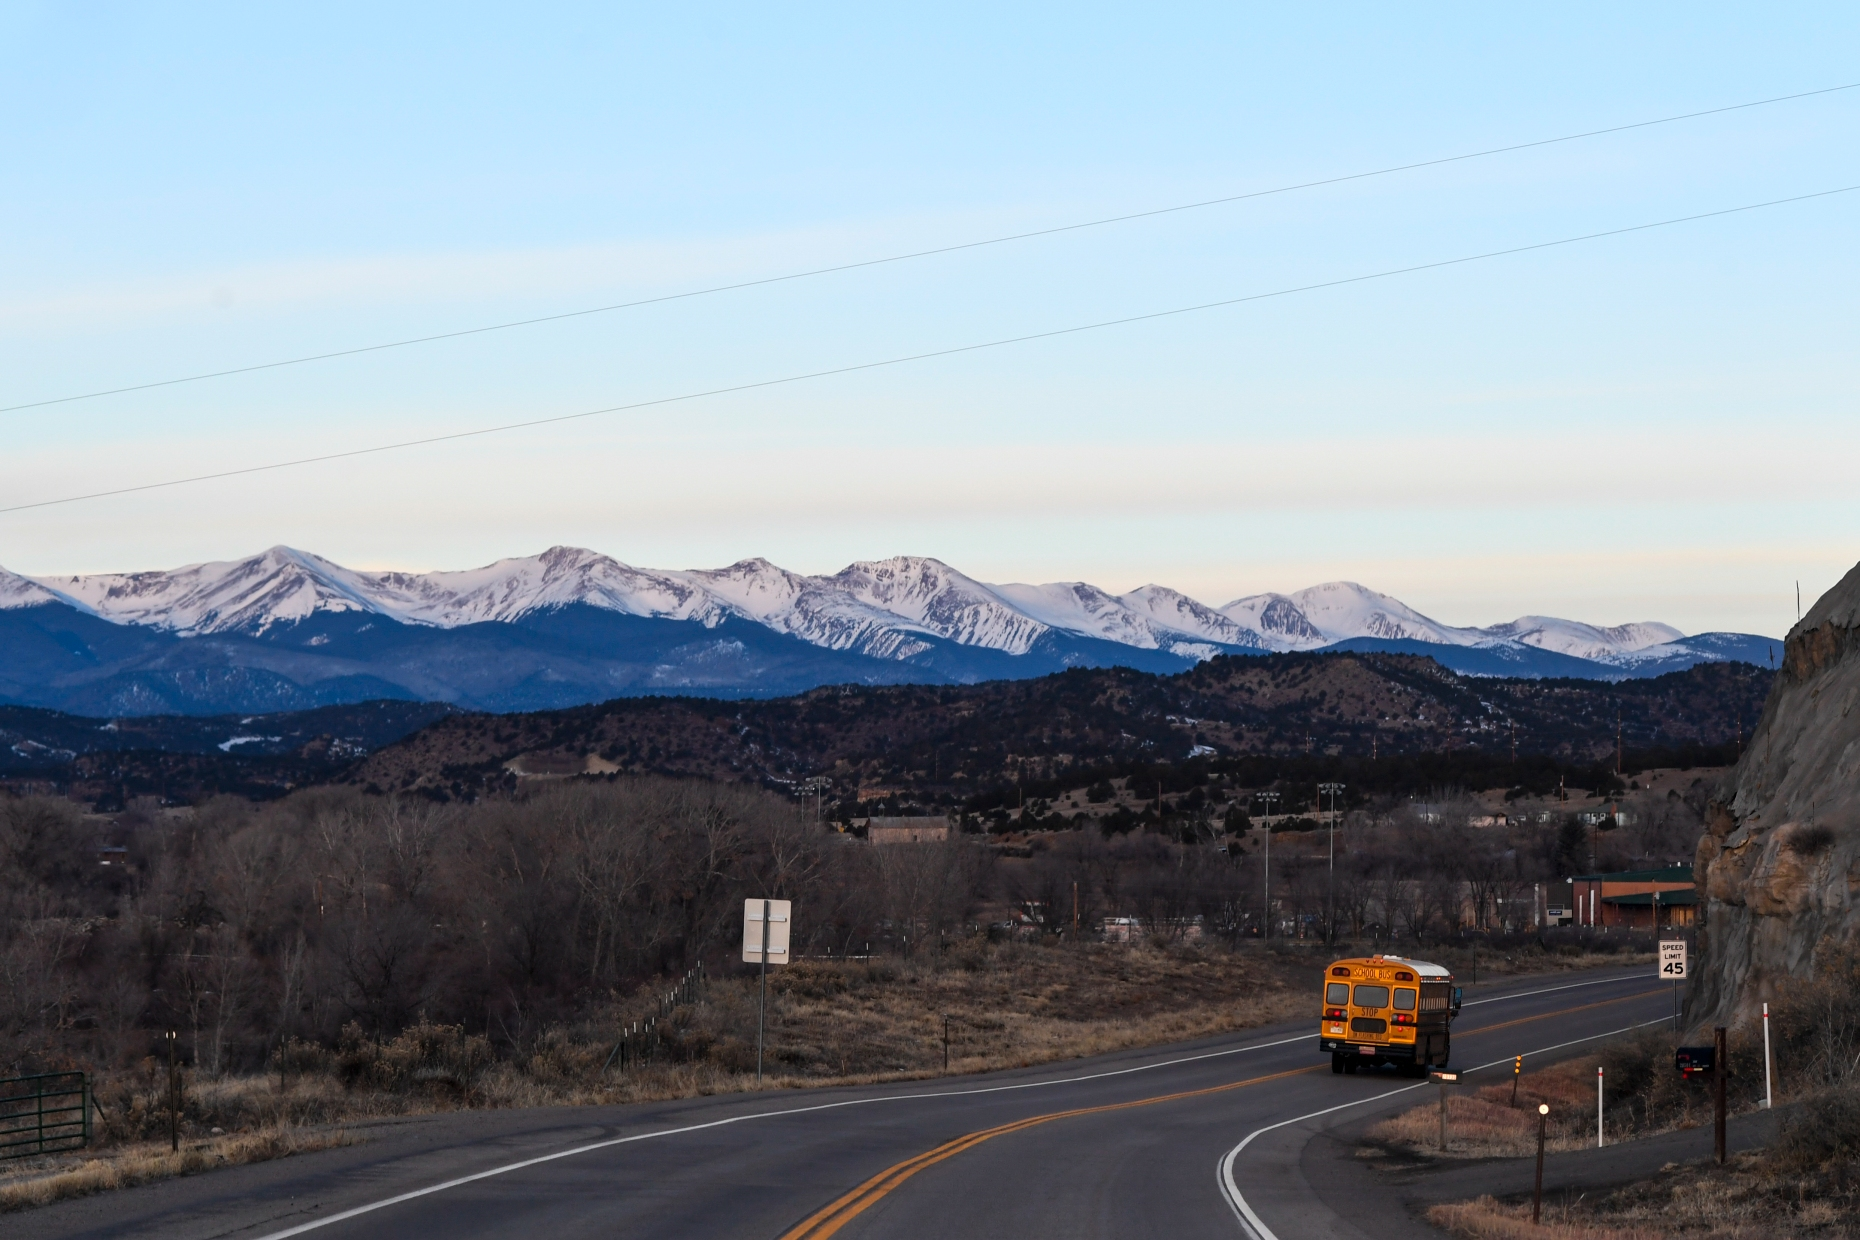 A yellow school bus drives around a curve in the highway with a view of snow-capped mountains and blue skies in the background.